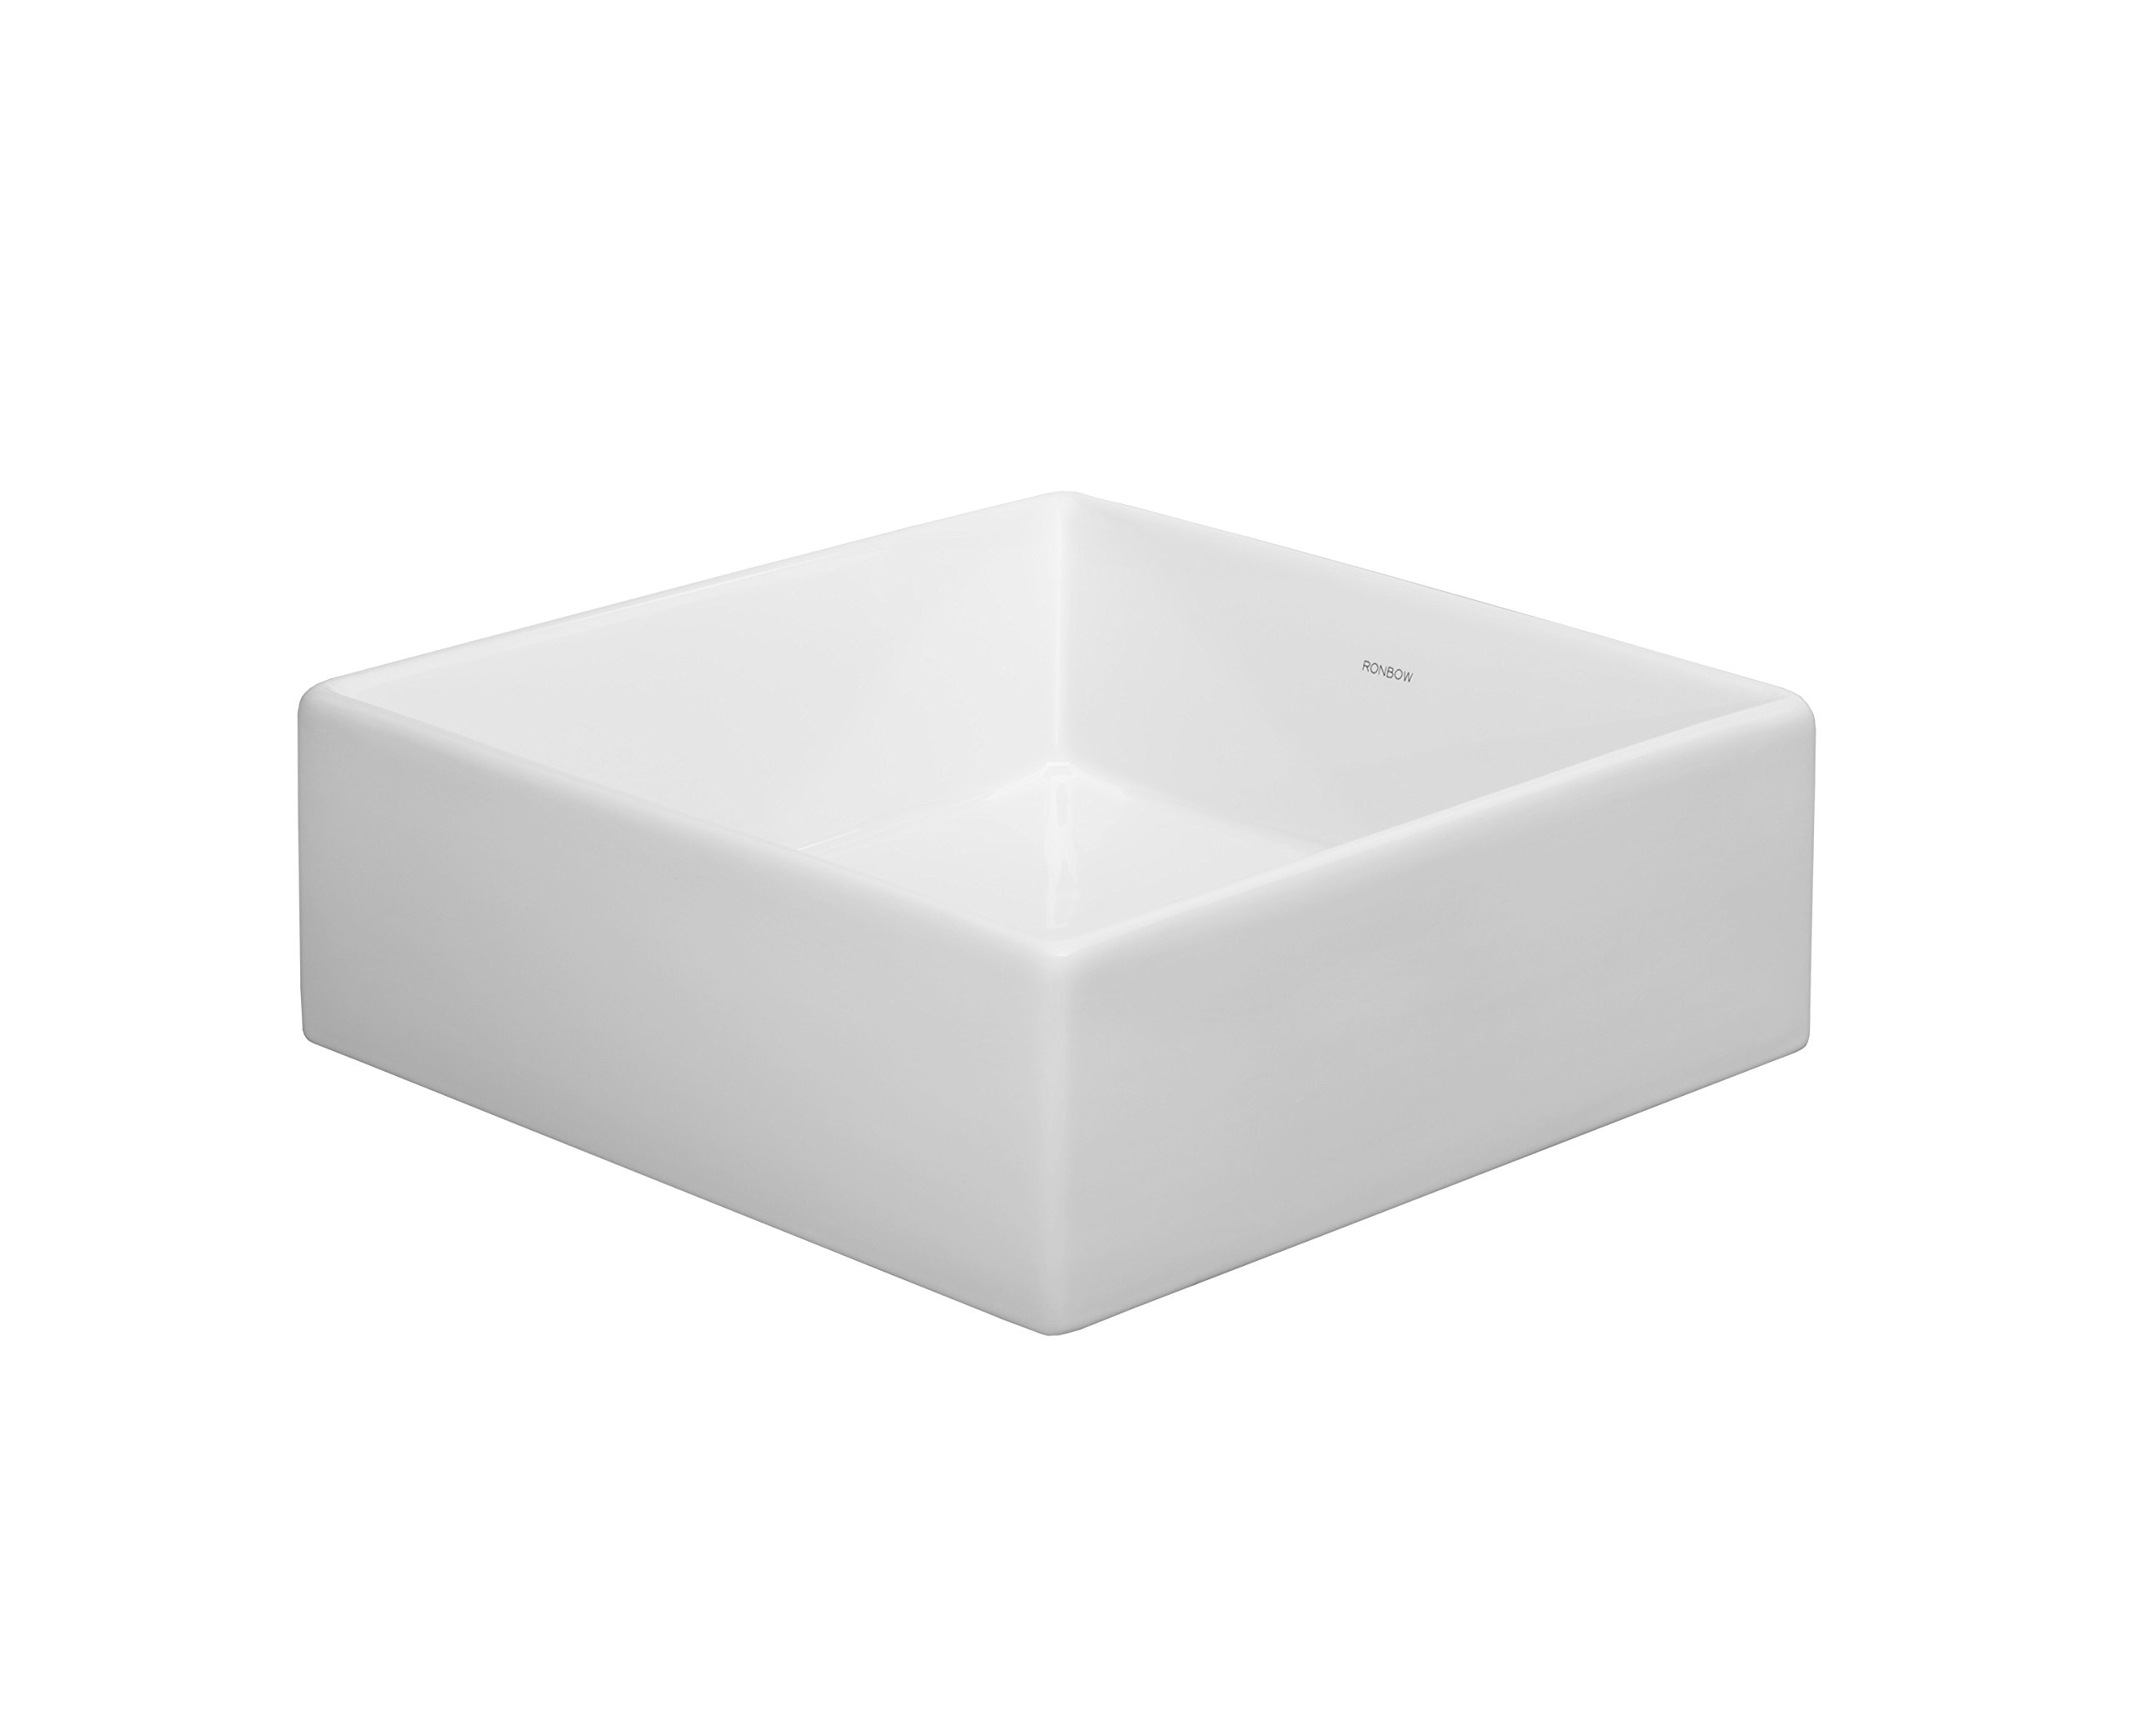 RONBOW Frame 14 Inch Square Tapered Ceramic Vessel Bathroom Sink in White 200034-WH